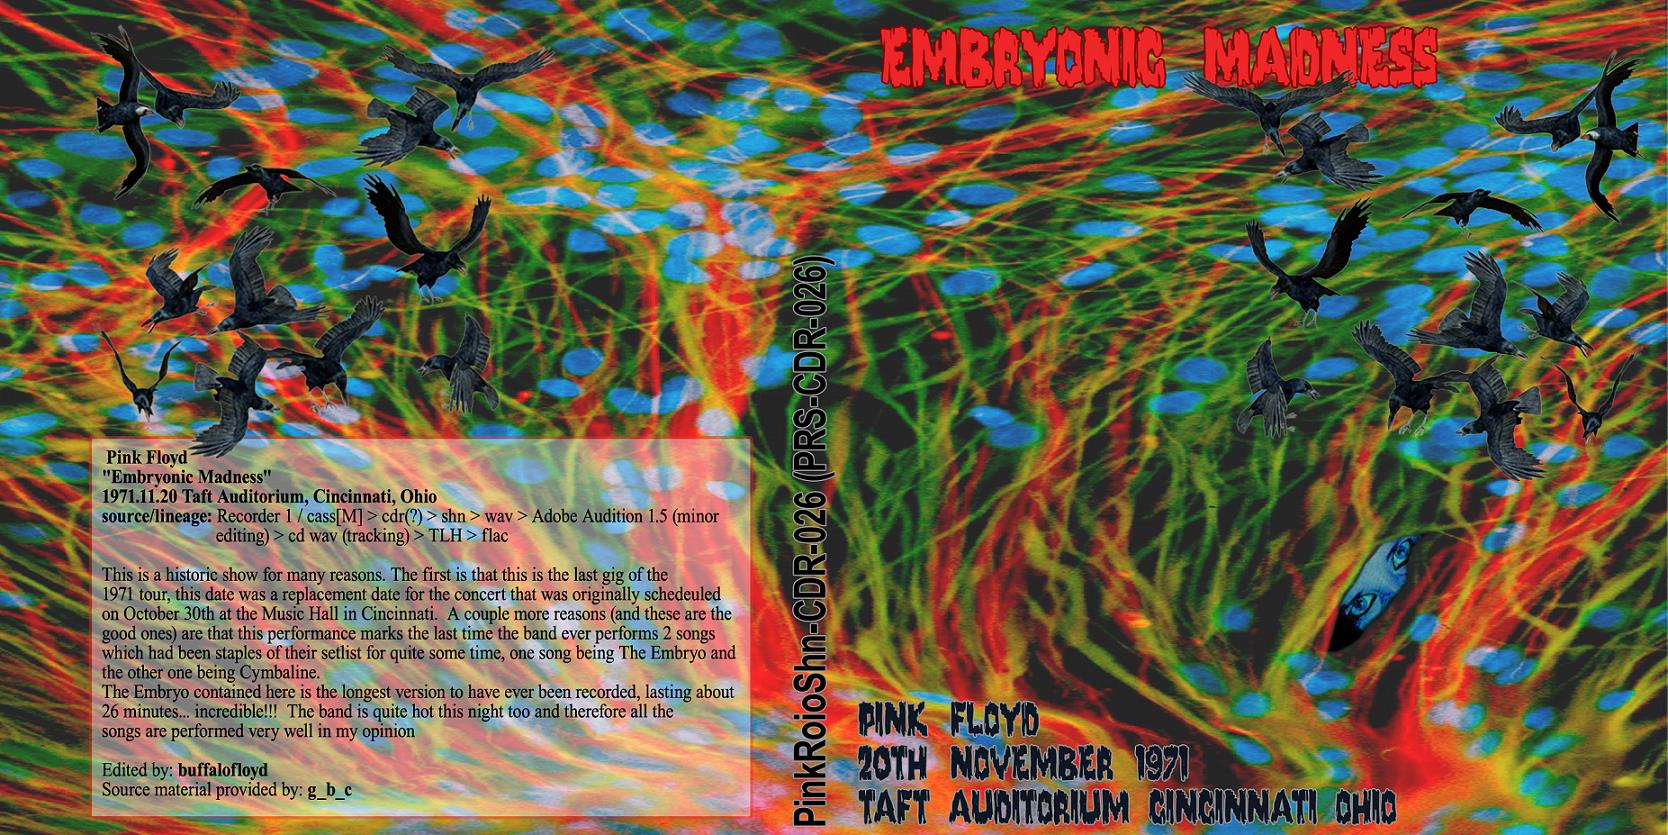 1971-11-20-Embryonic_Madness-front